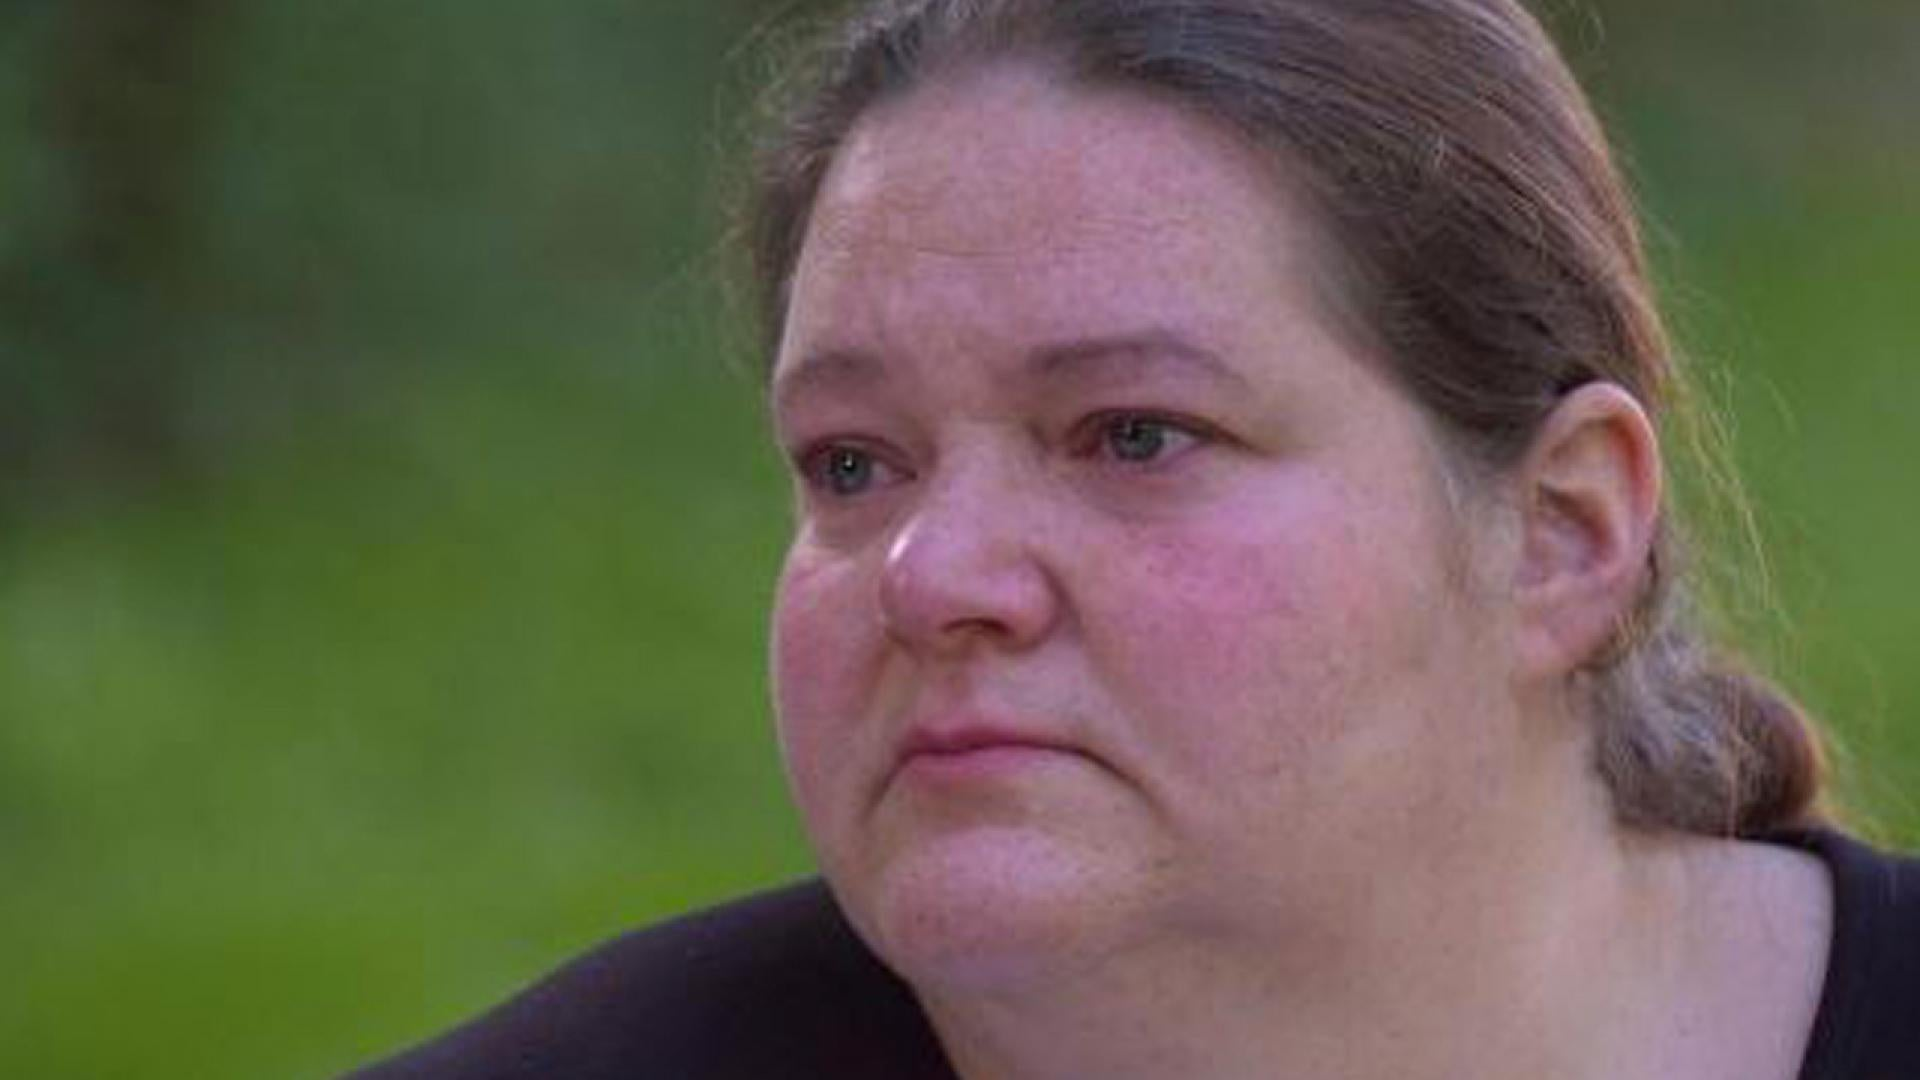 The mother says she doesn't regret calling the cops on her son.